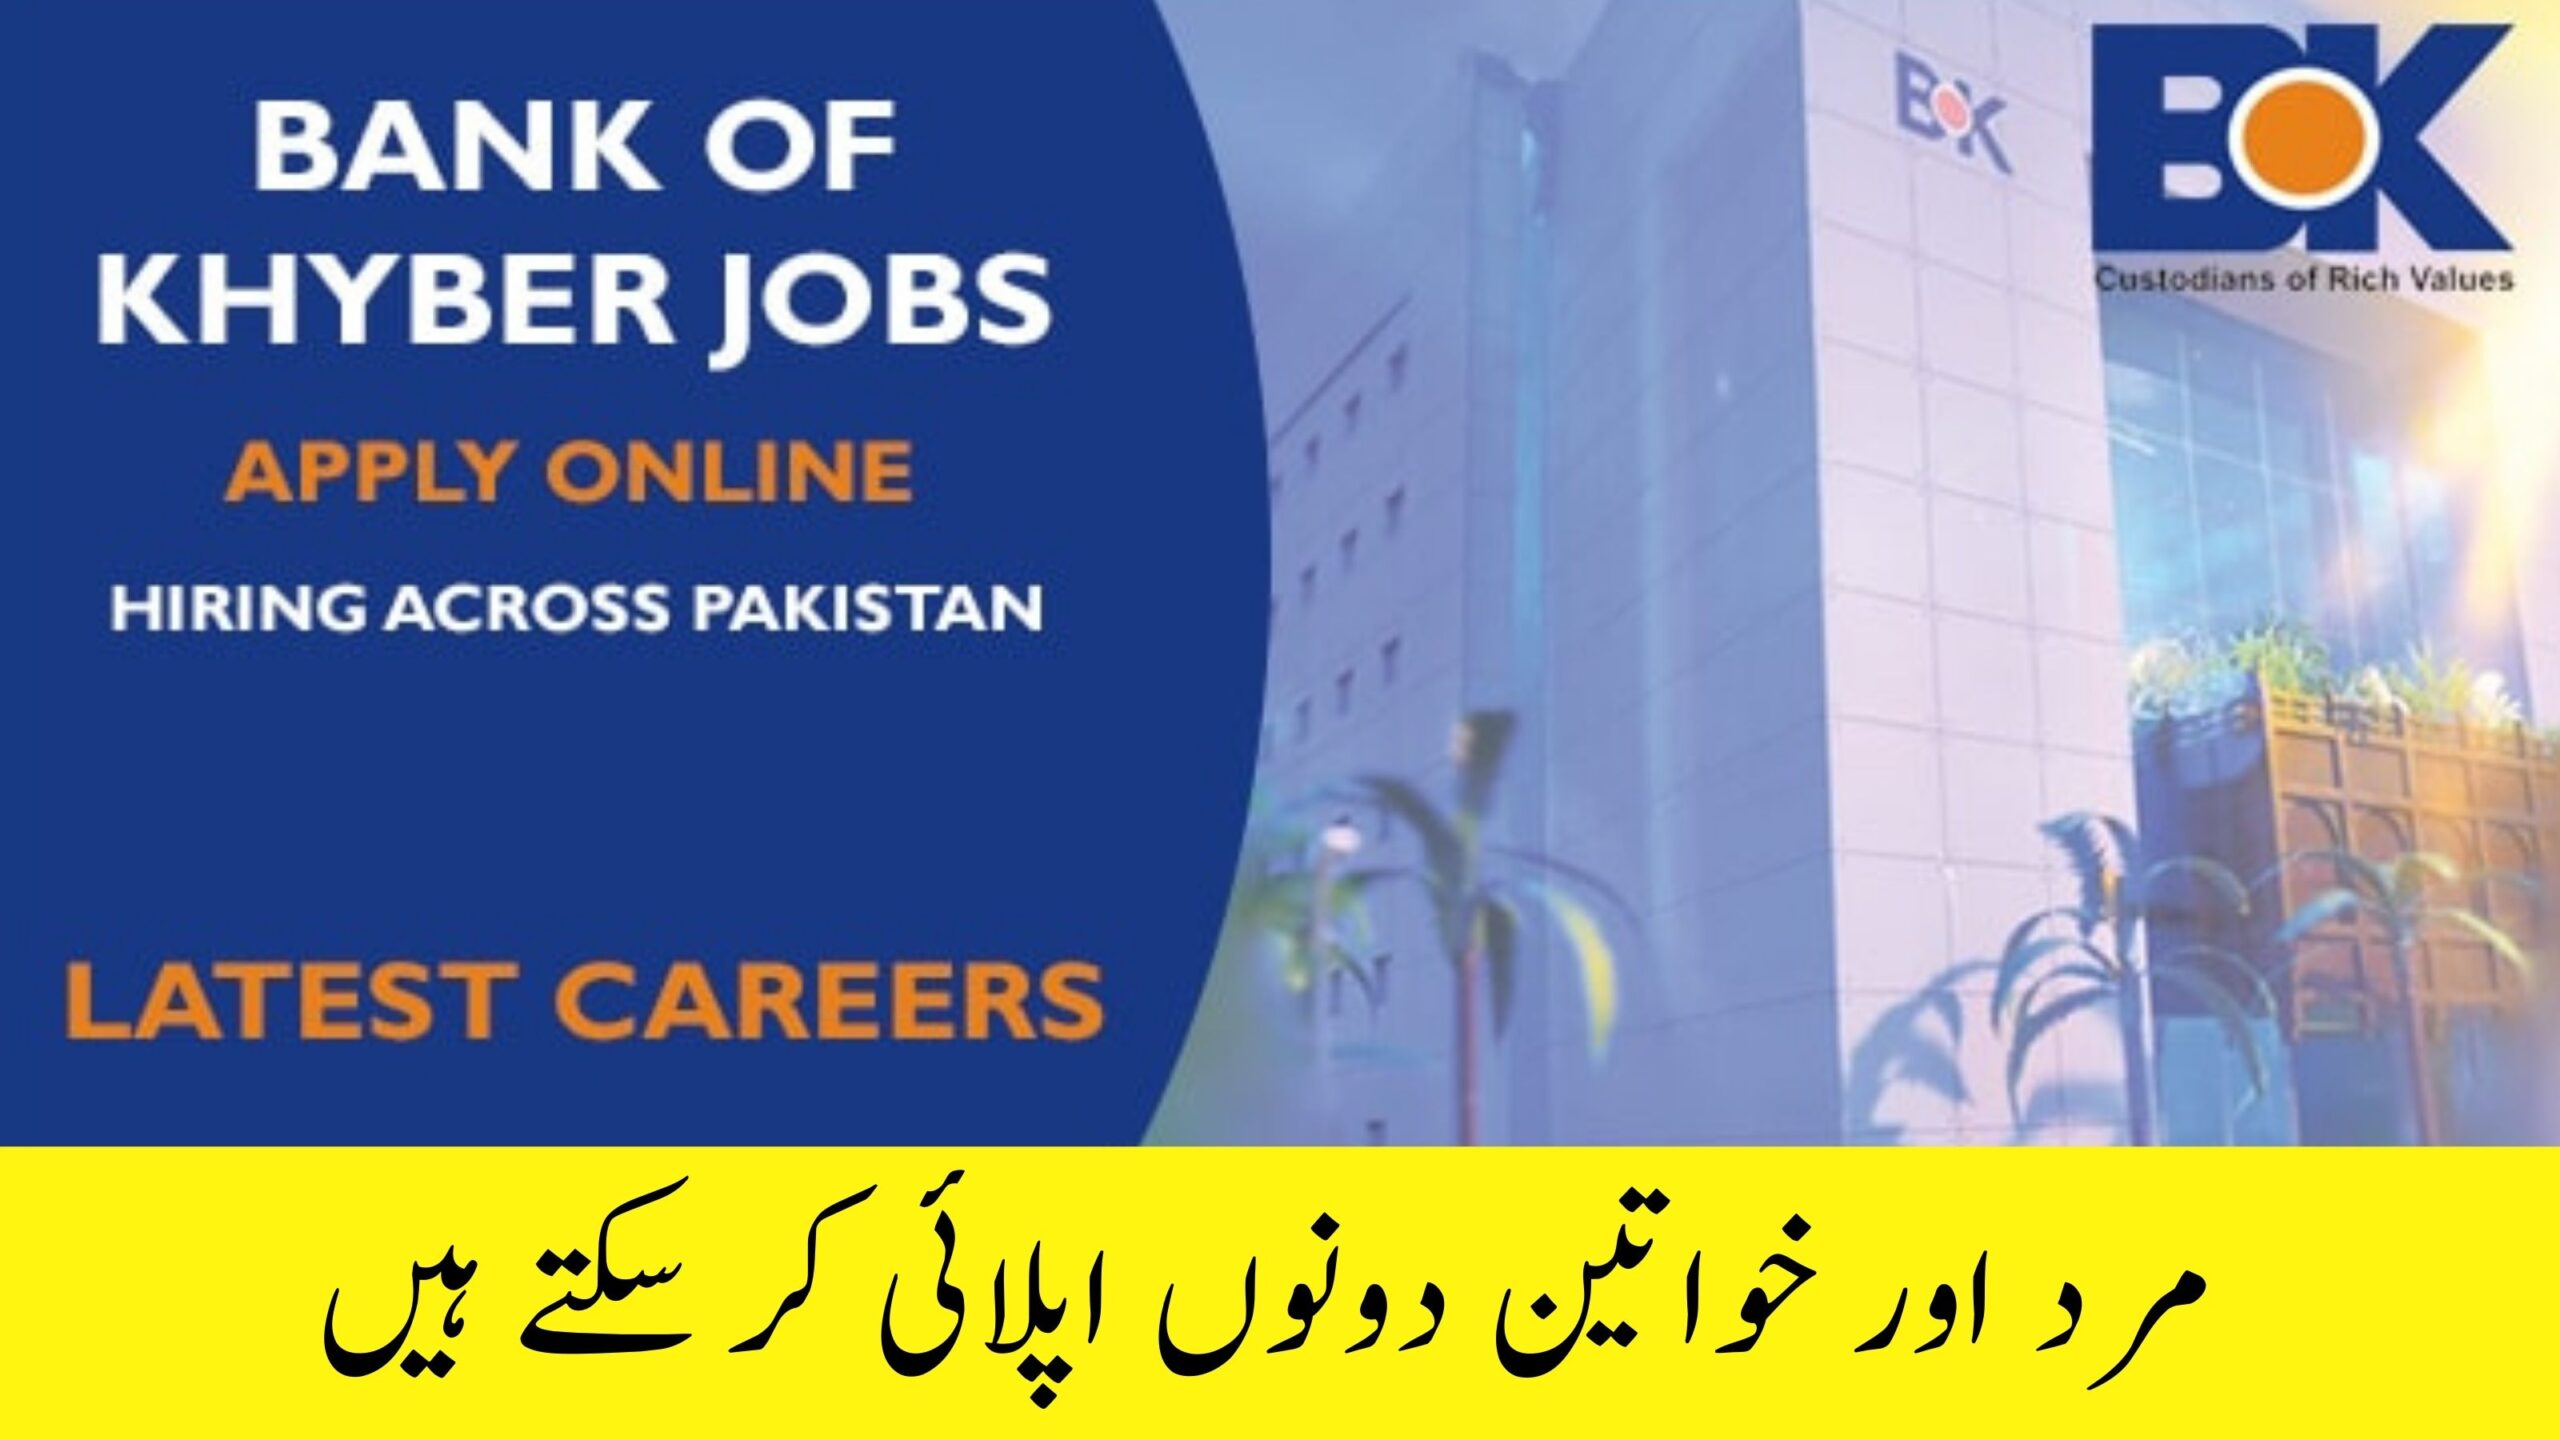 Bank of Khyber BOK Jobs